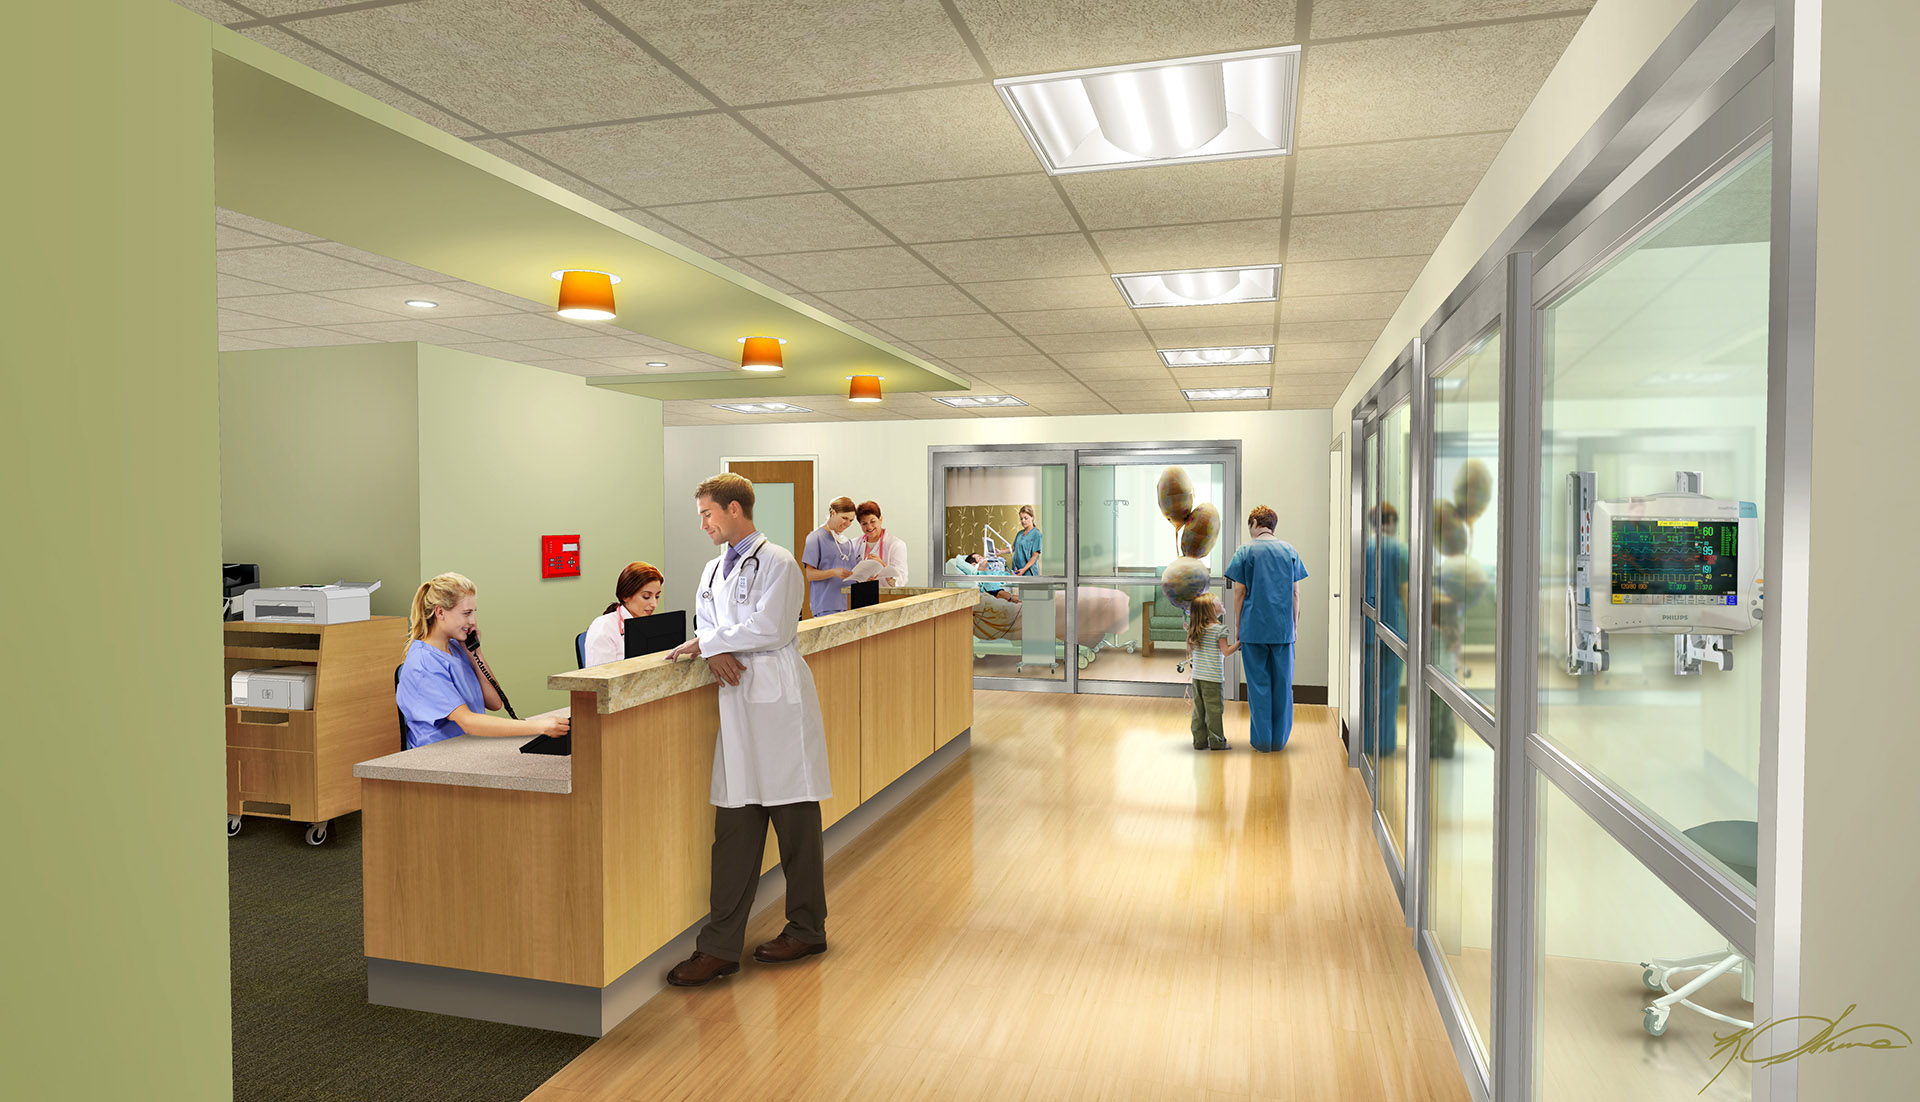 Illustration of Columbia Mamorial Hospital Critical Care Unit by Kurt Struve